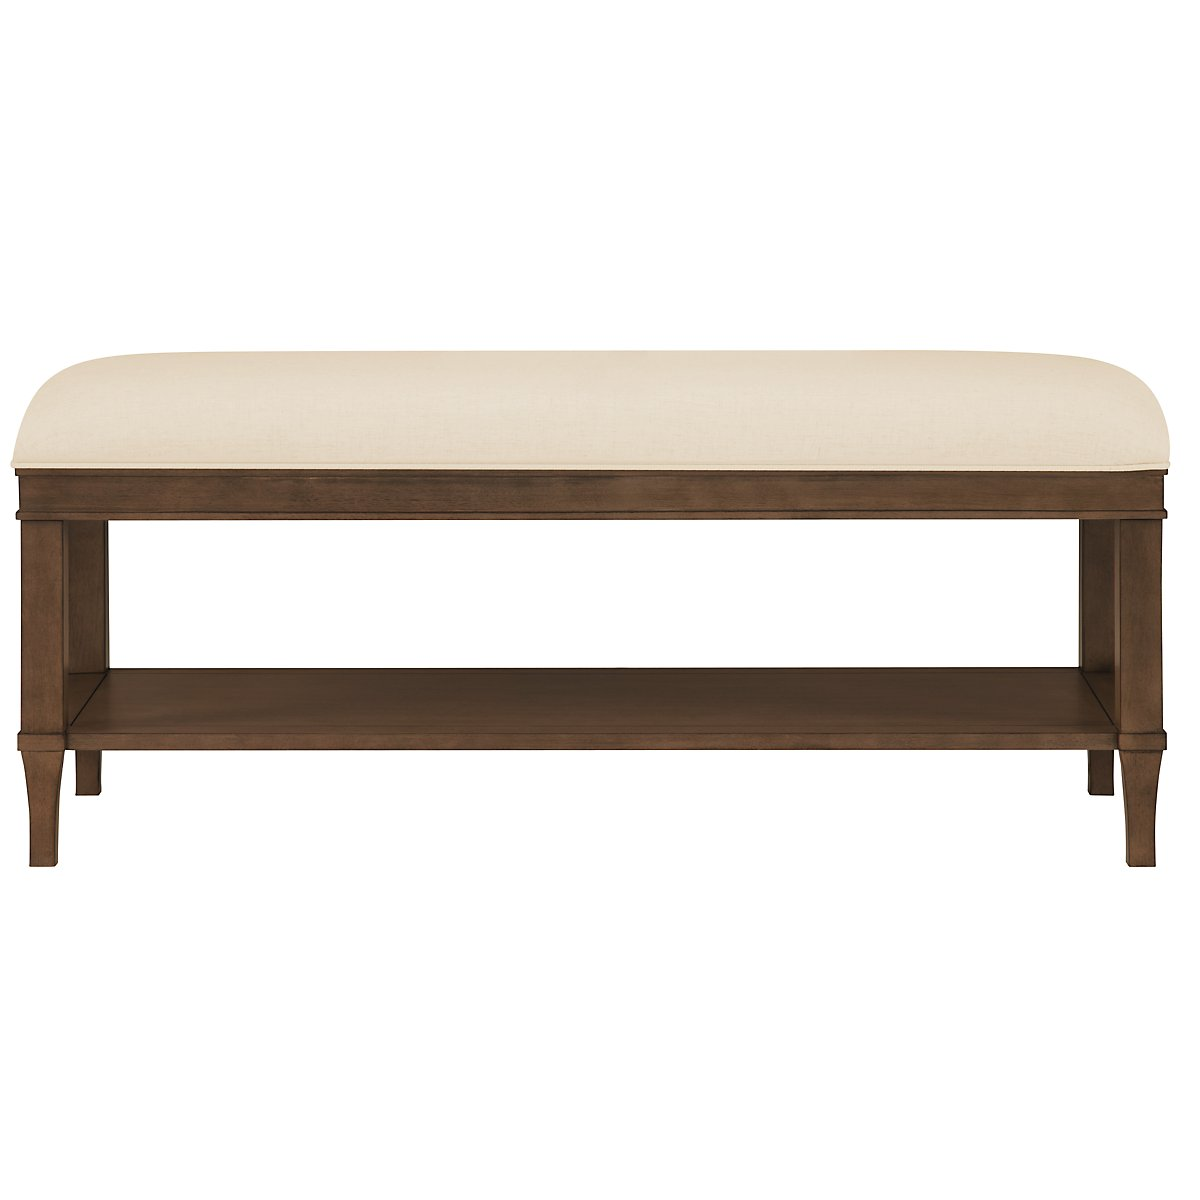 Preston Mid Tone Bench